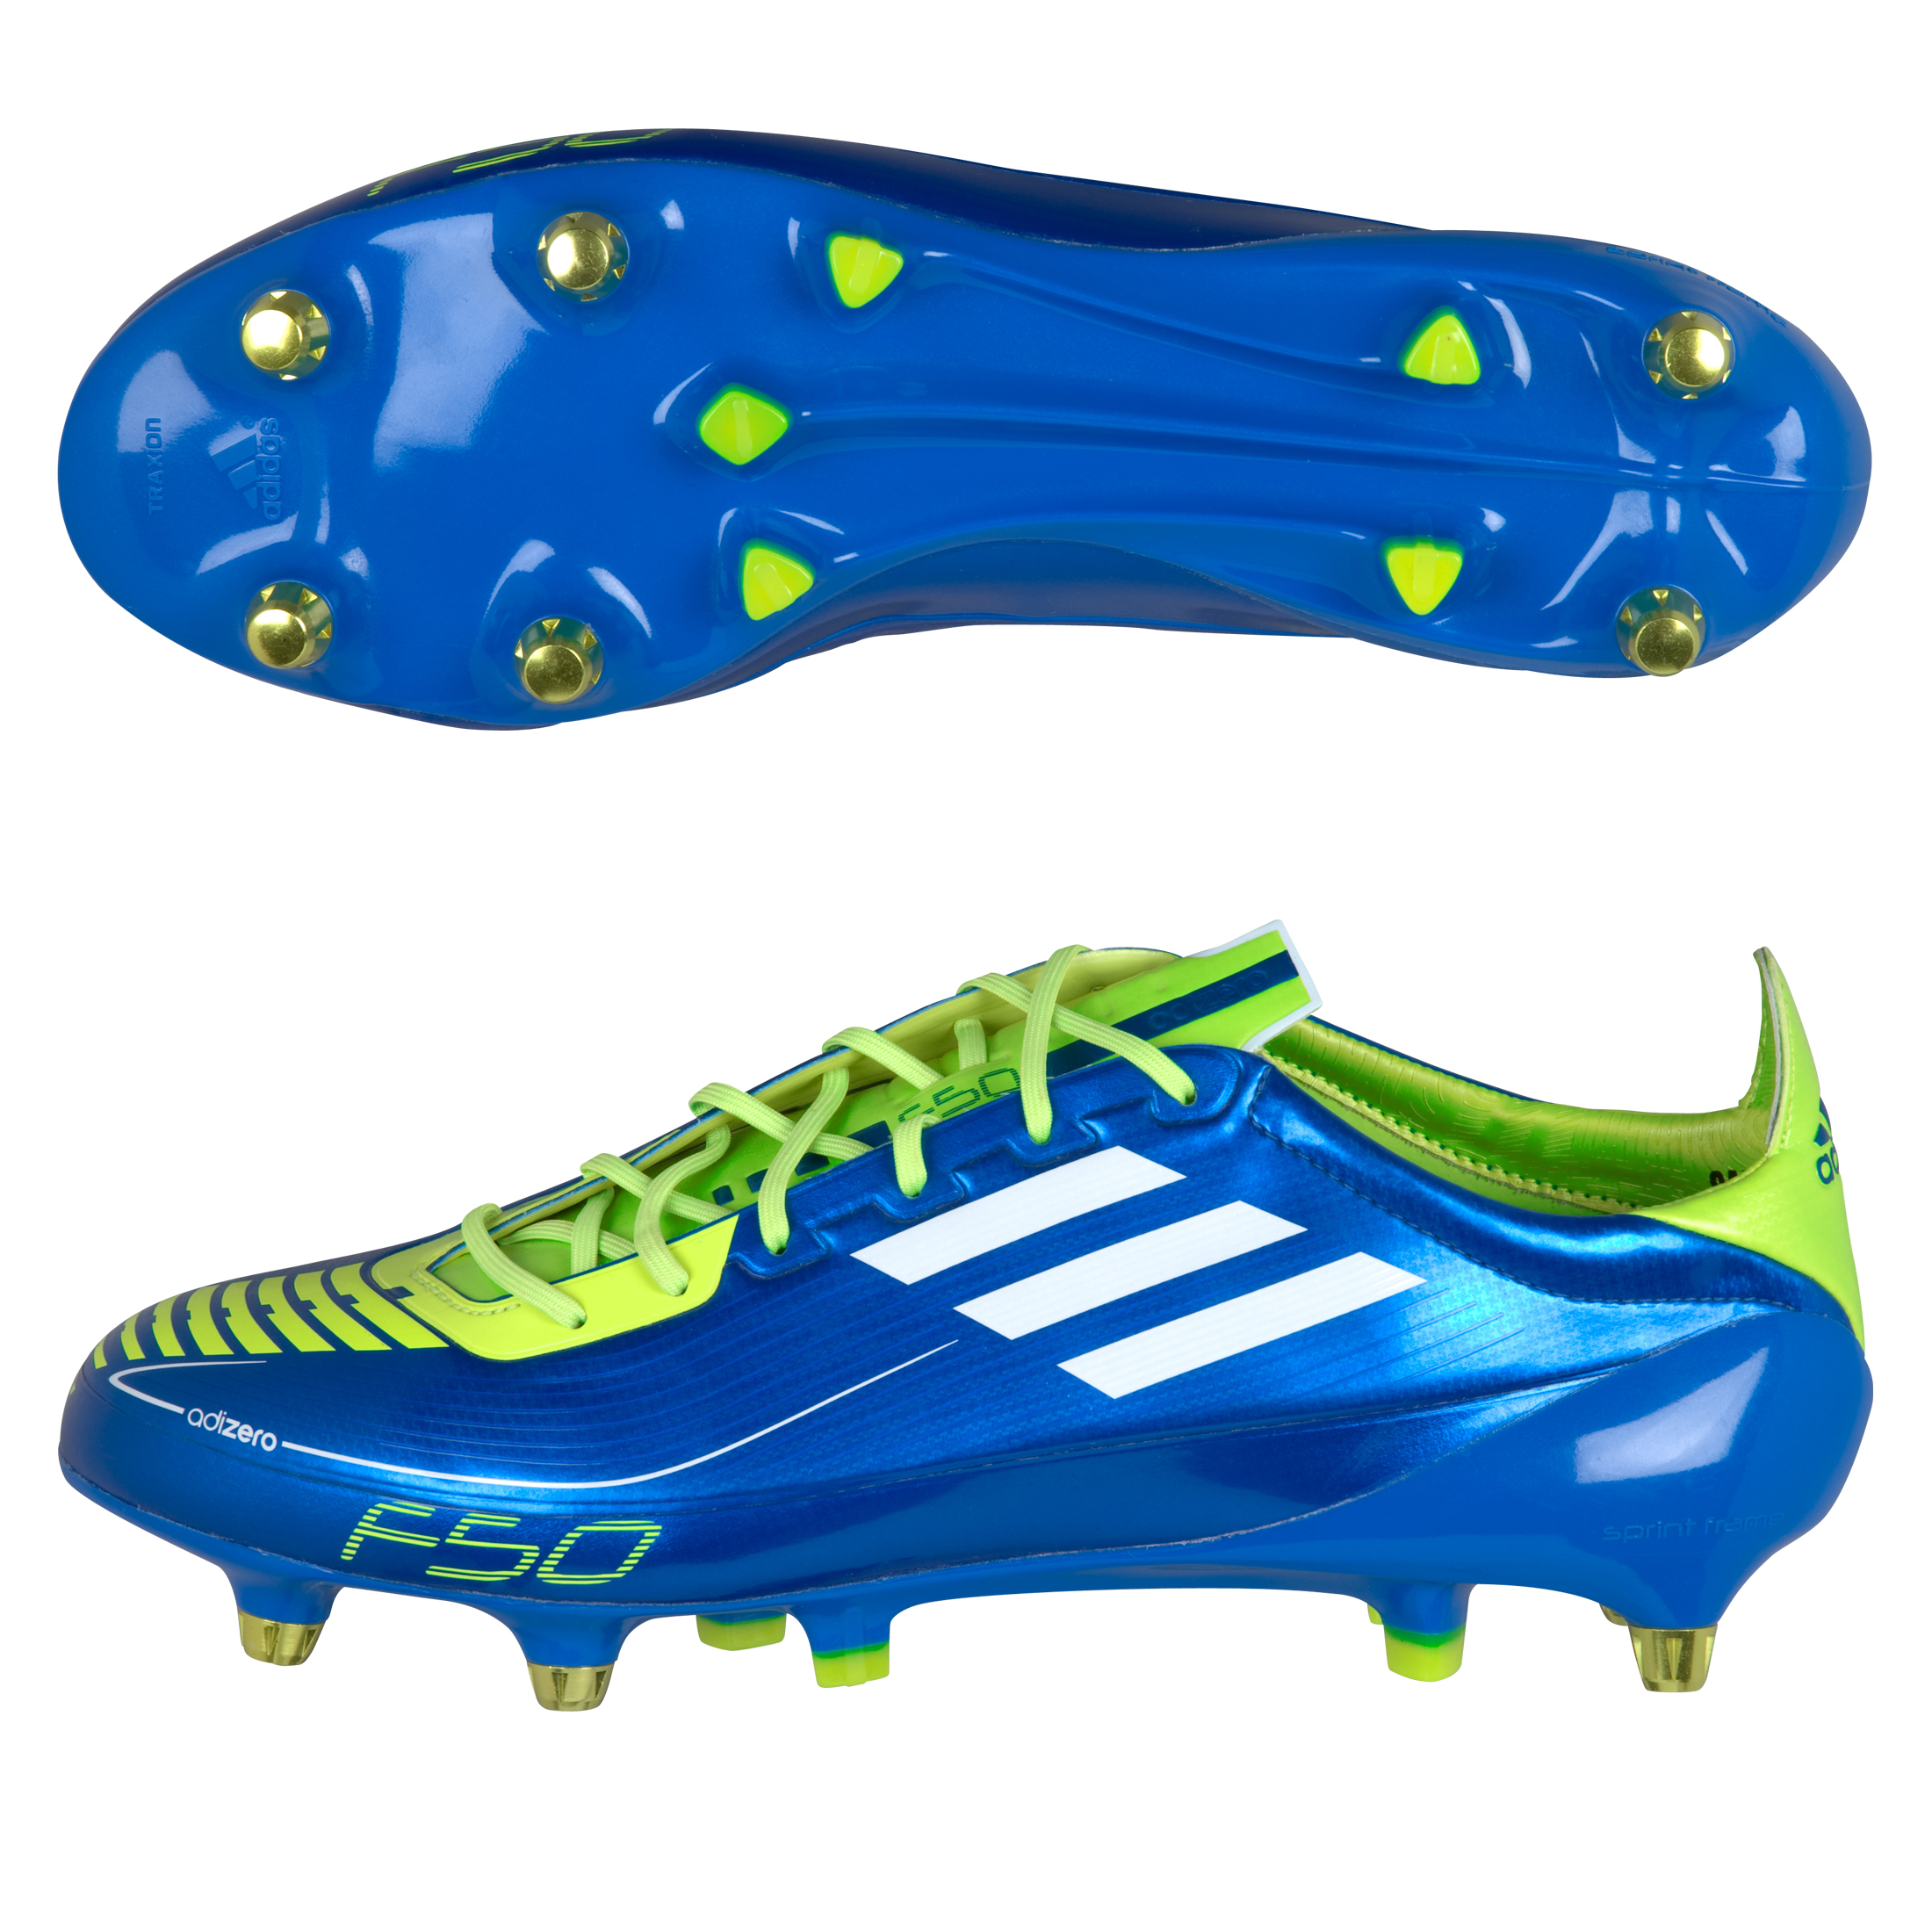 adidas F50 adizero TRX Soft Ground Synthetic Football Boots - Anodized Blue / White / Slime